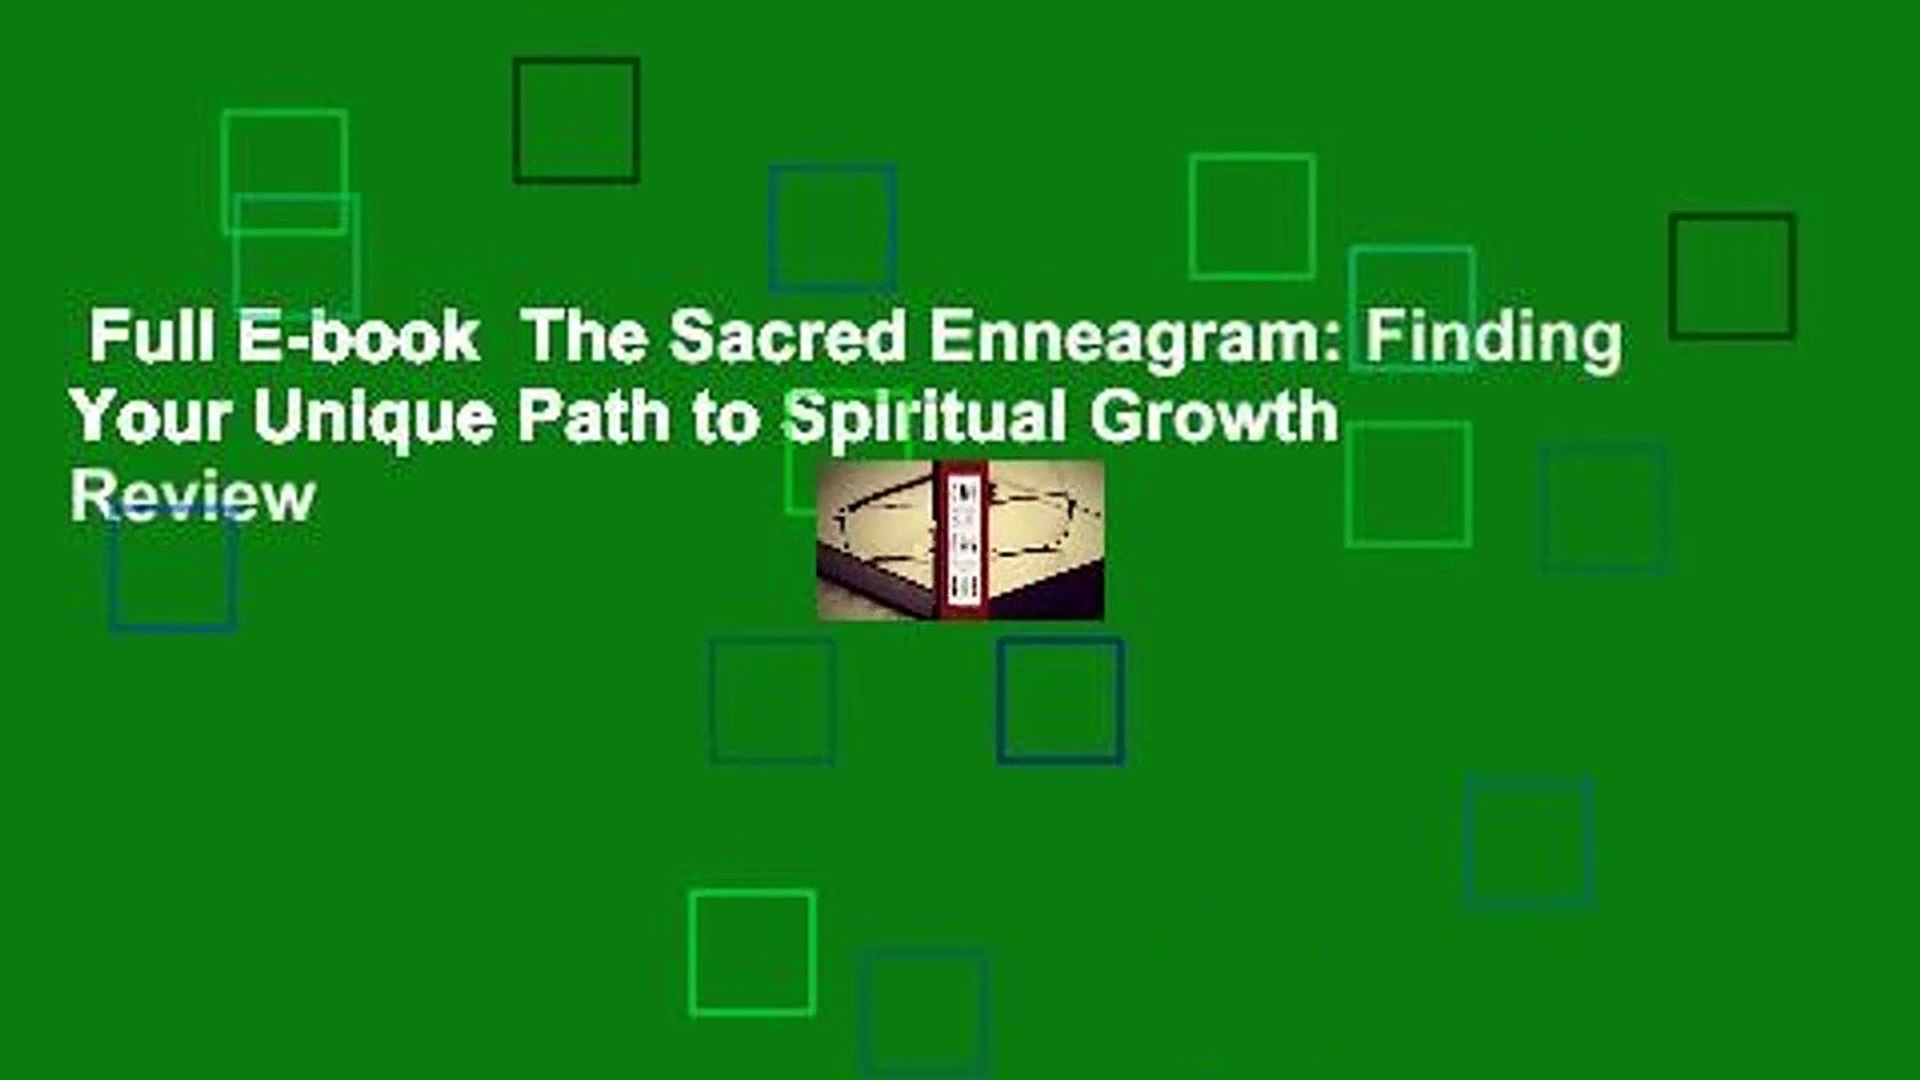 Full E-book  The Sacred Enneagram: Finding Your Unique Path to Spiritual Growth  Review